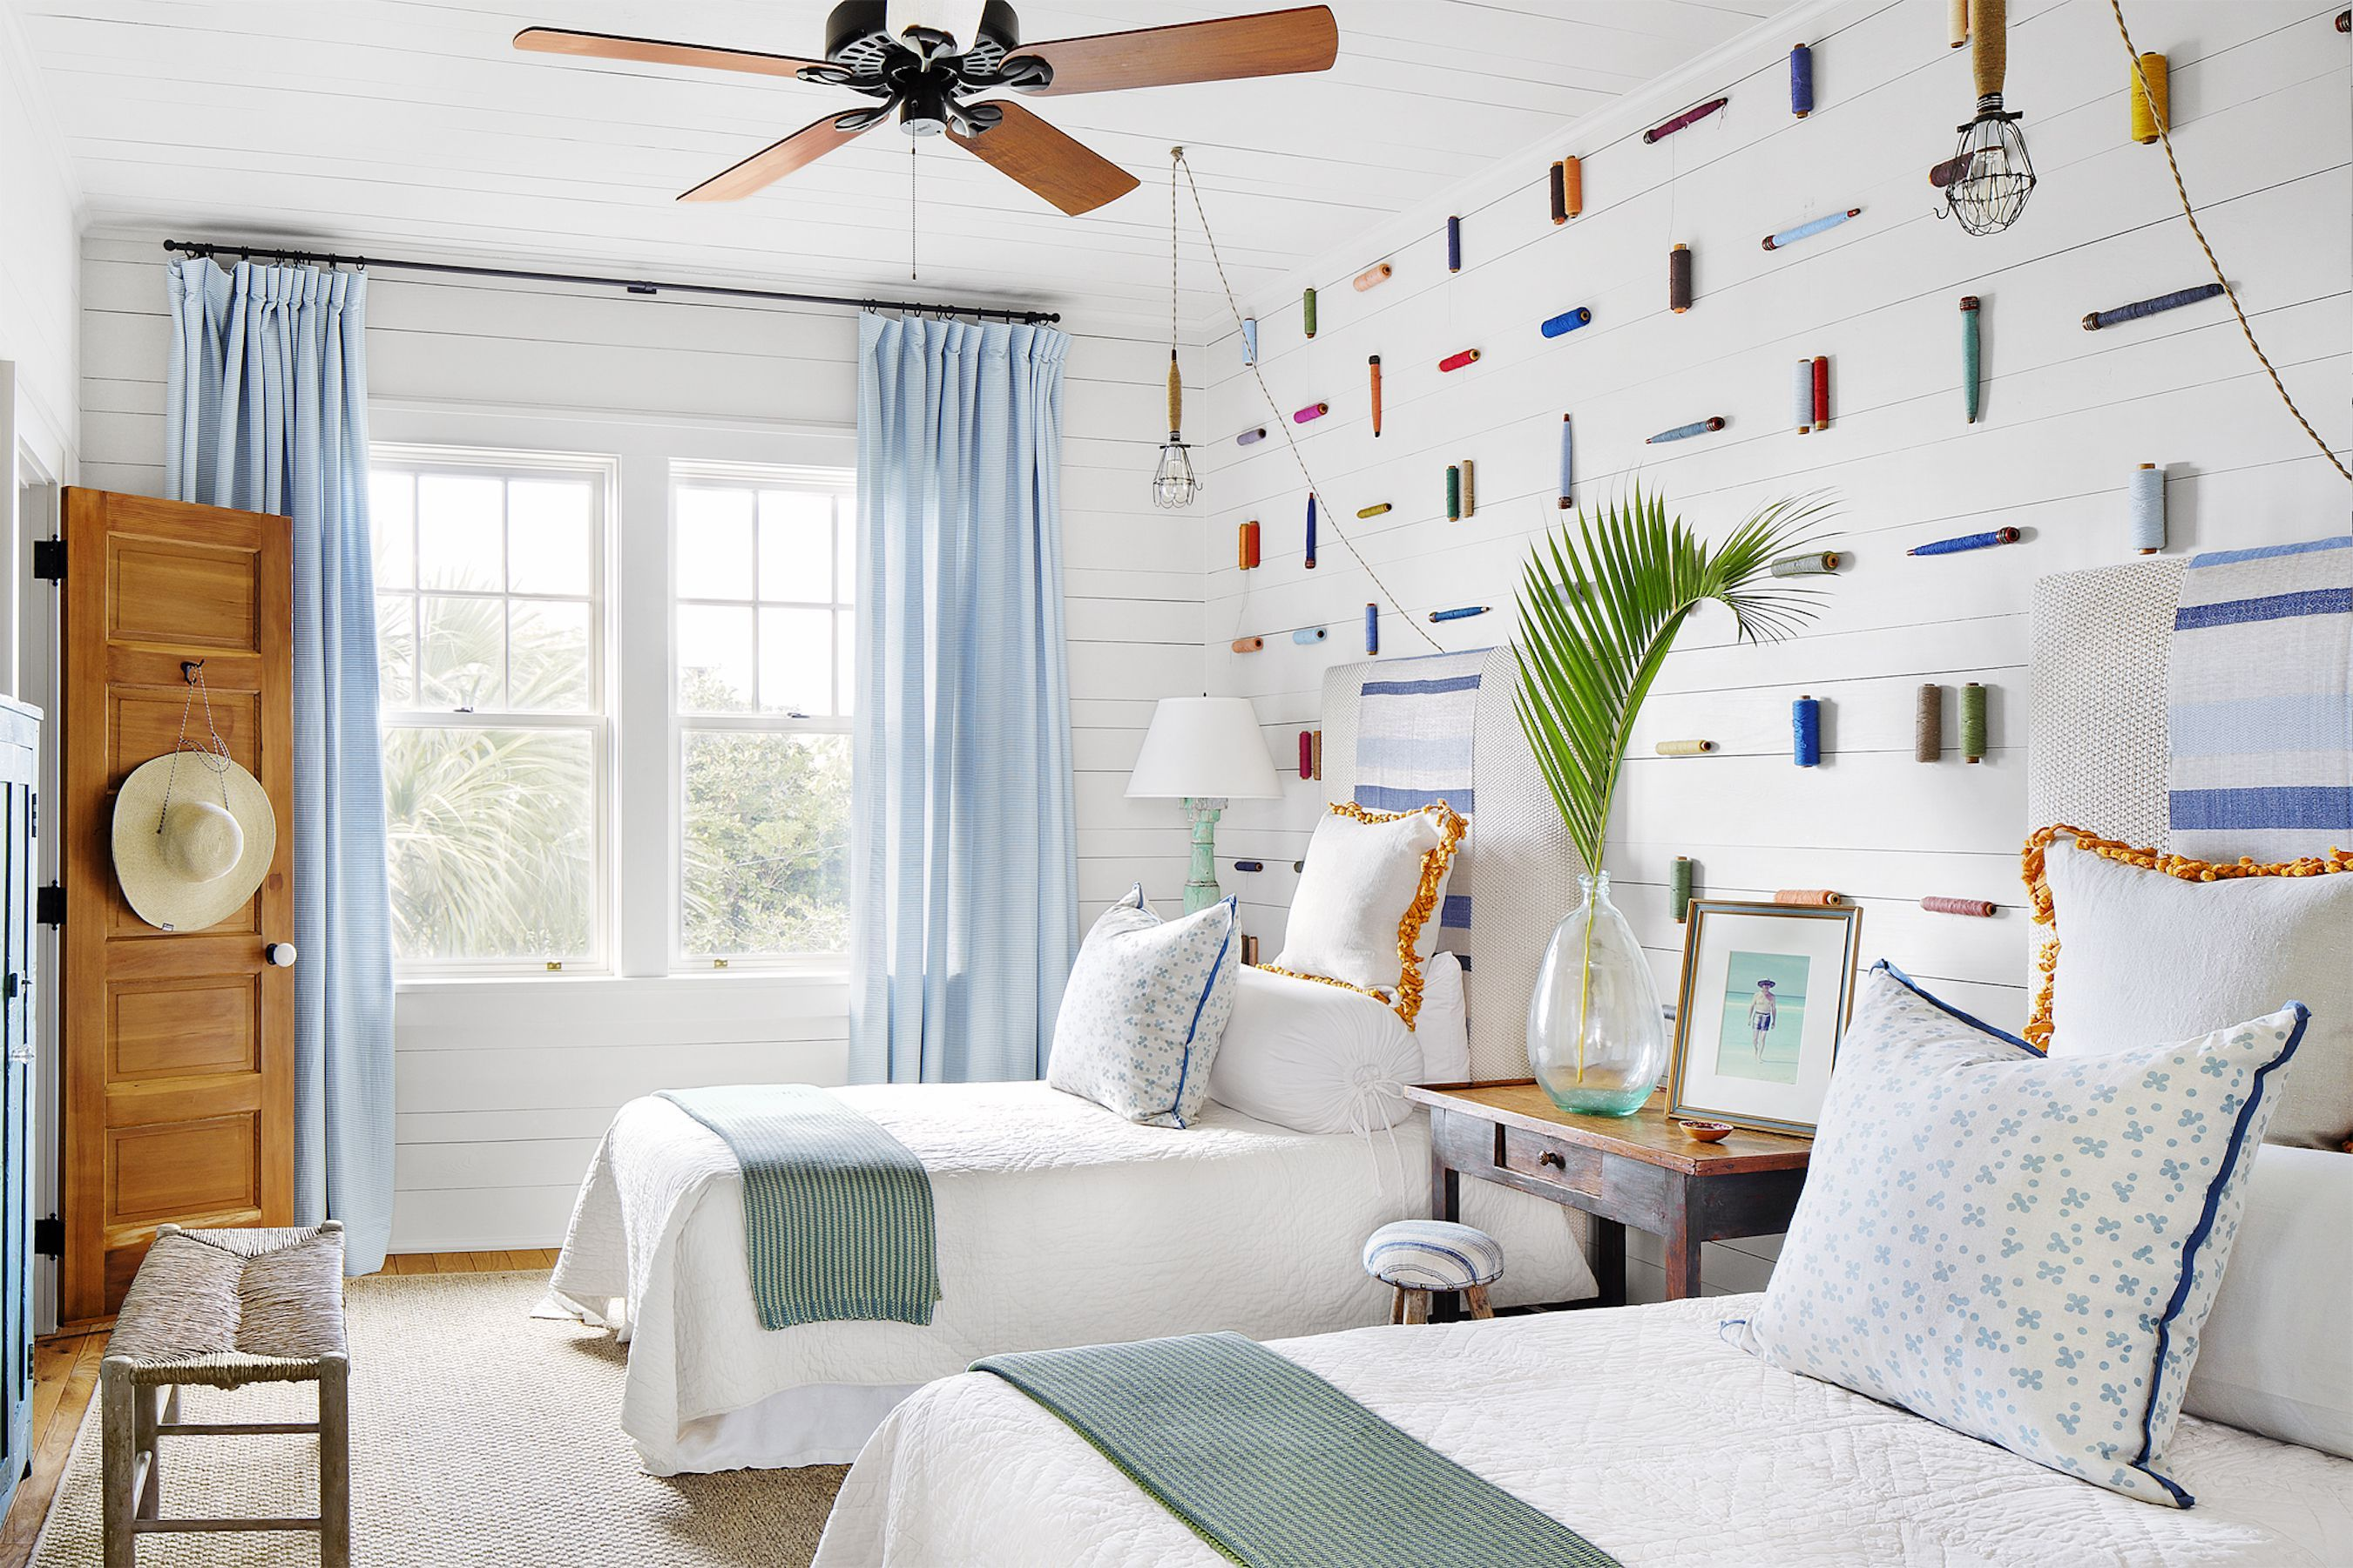 42 Beach House Decor Ideas That Will Make Major Waves In Any Interior